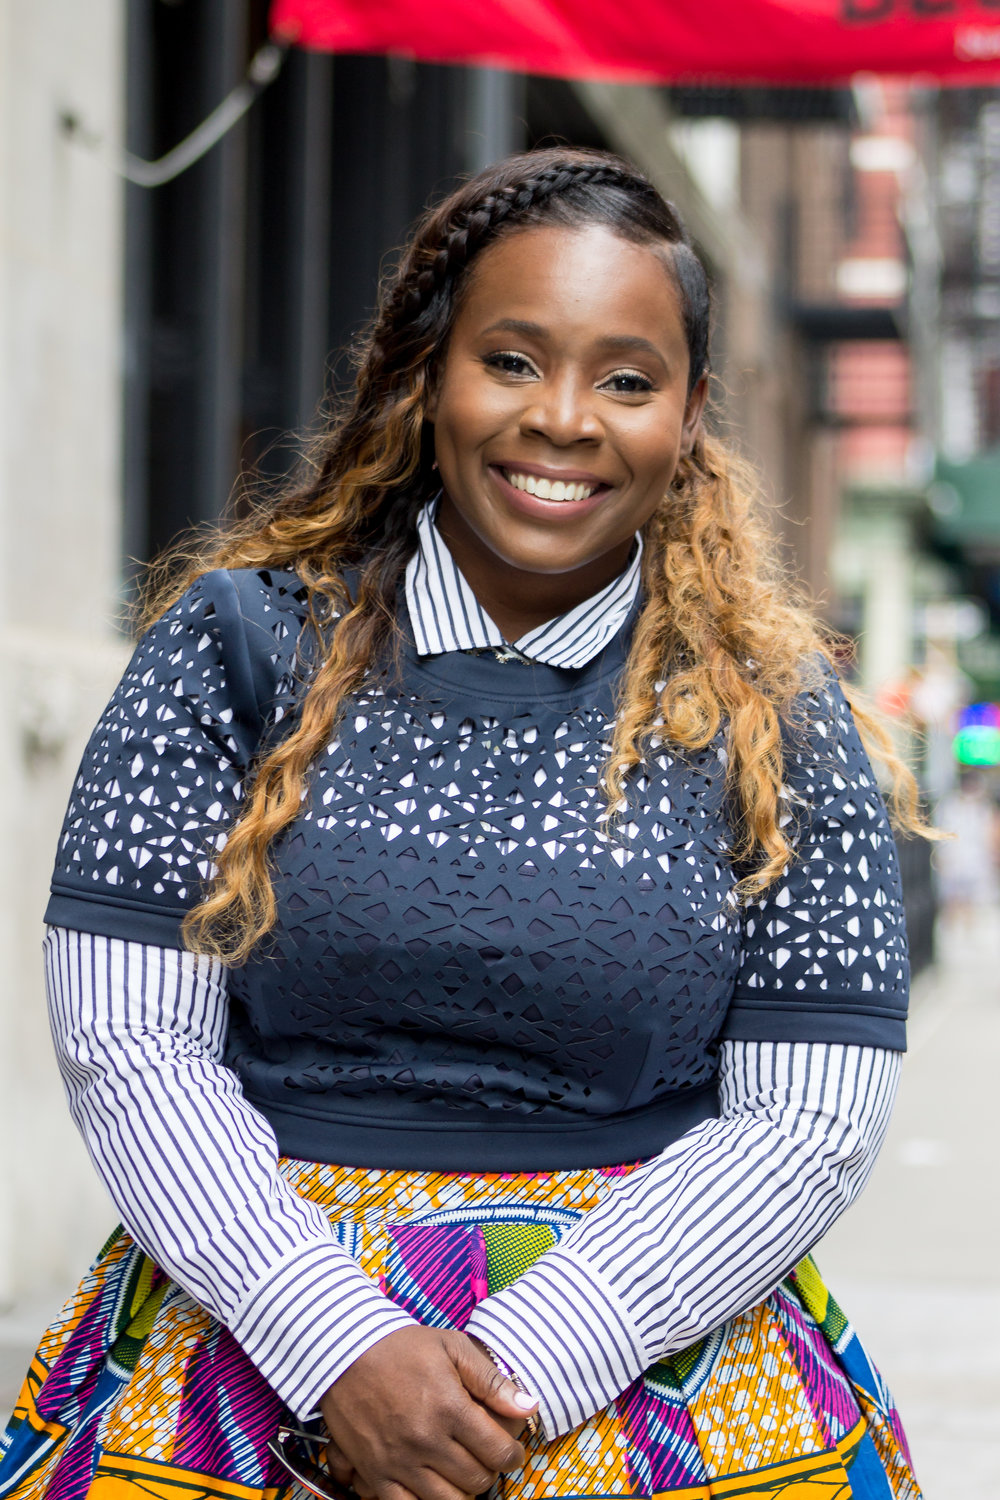 Sharifa Murdock   Sharifa Murdock is co-owner of Liberty Fairs and the founder of The Brooklyn Intern. She is also a writer and philanthropist, and has travelled internationally to raise awareness for women's health and childcare. You can follow her on  Twitter  and  Instagram .